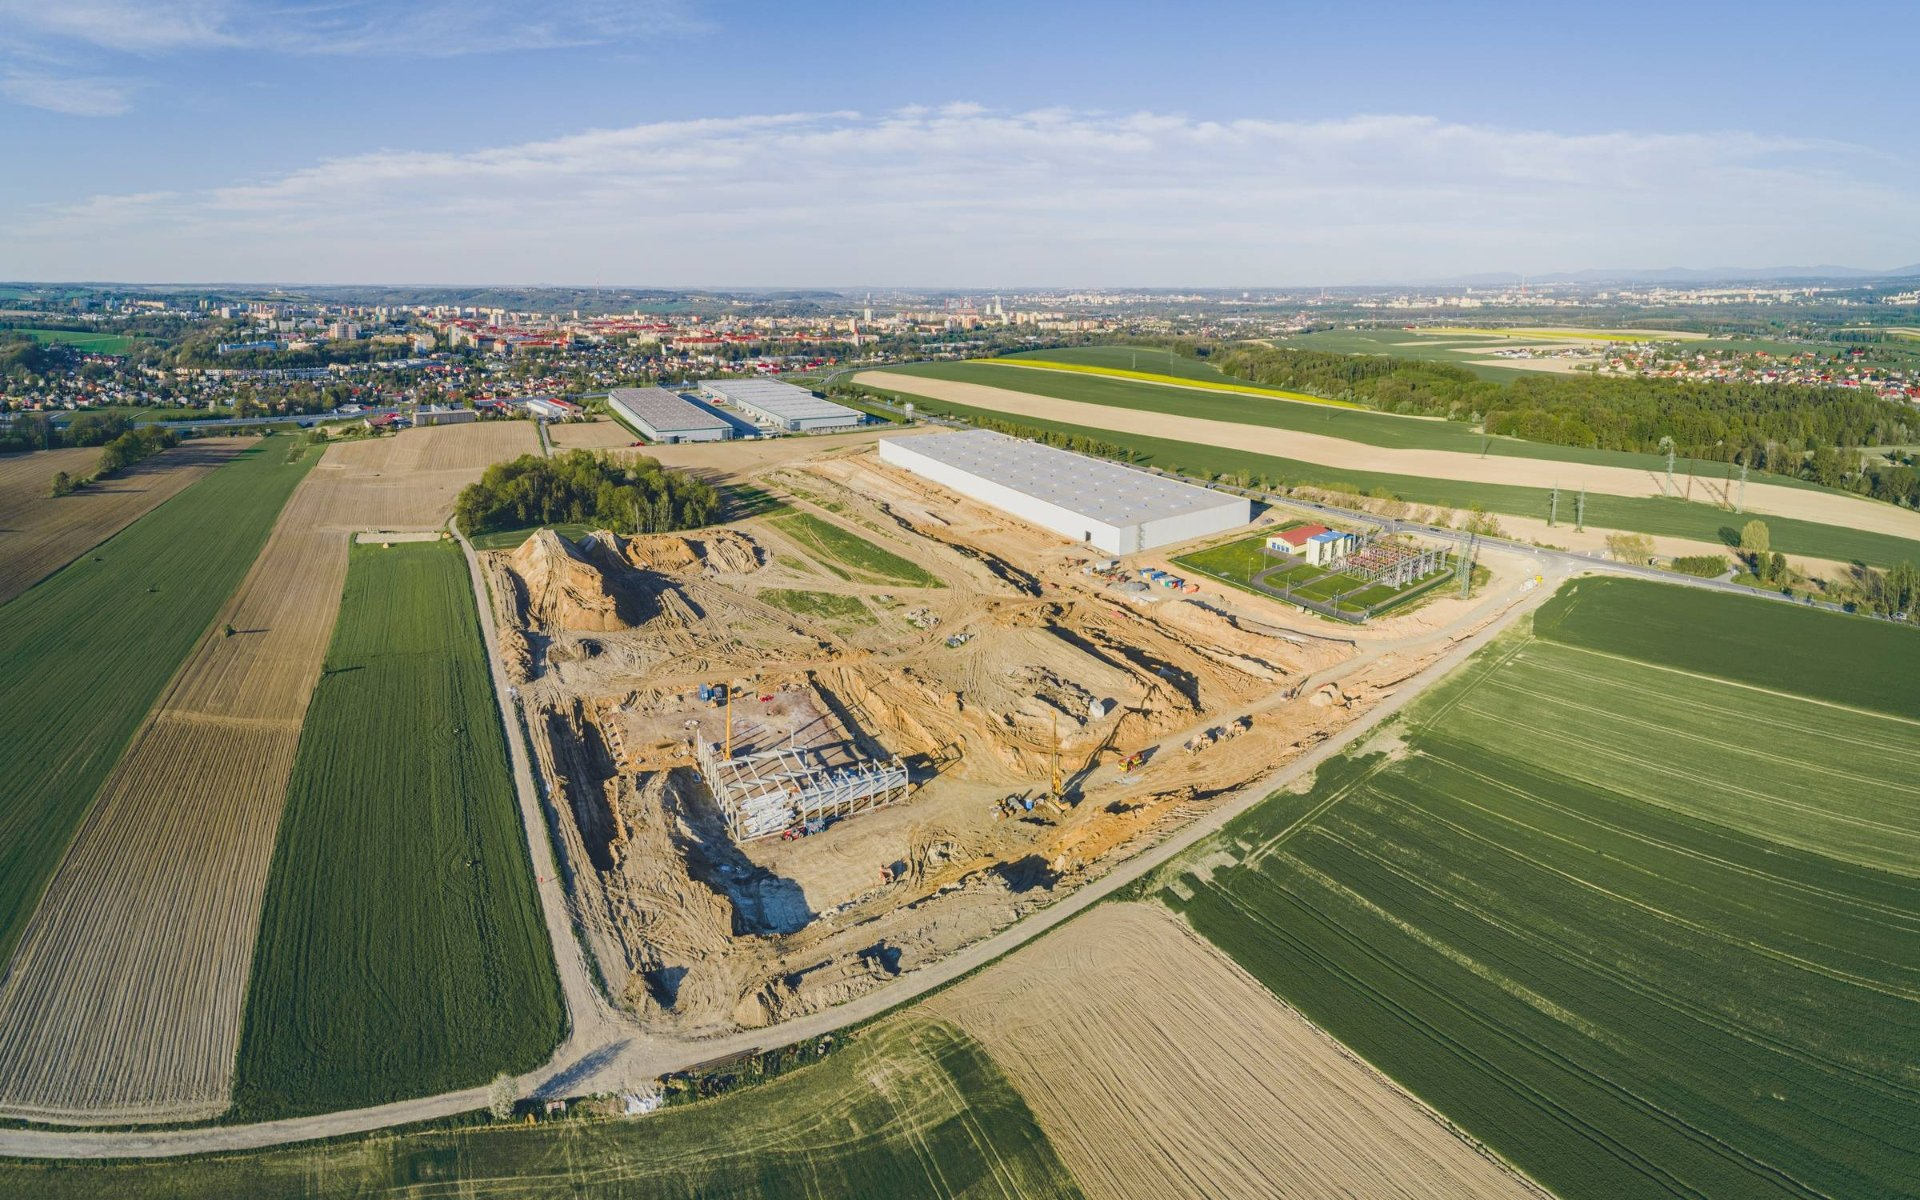 CTP Park Ostrava Poruba - Lease of modern warehouse and production space